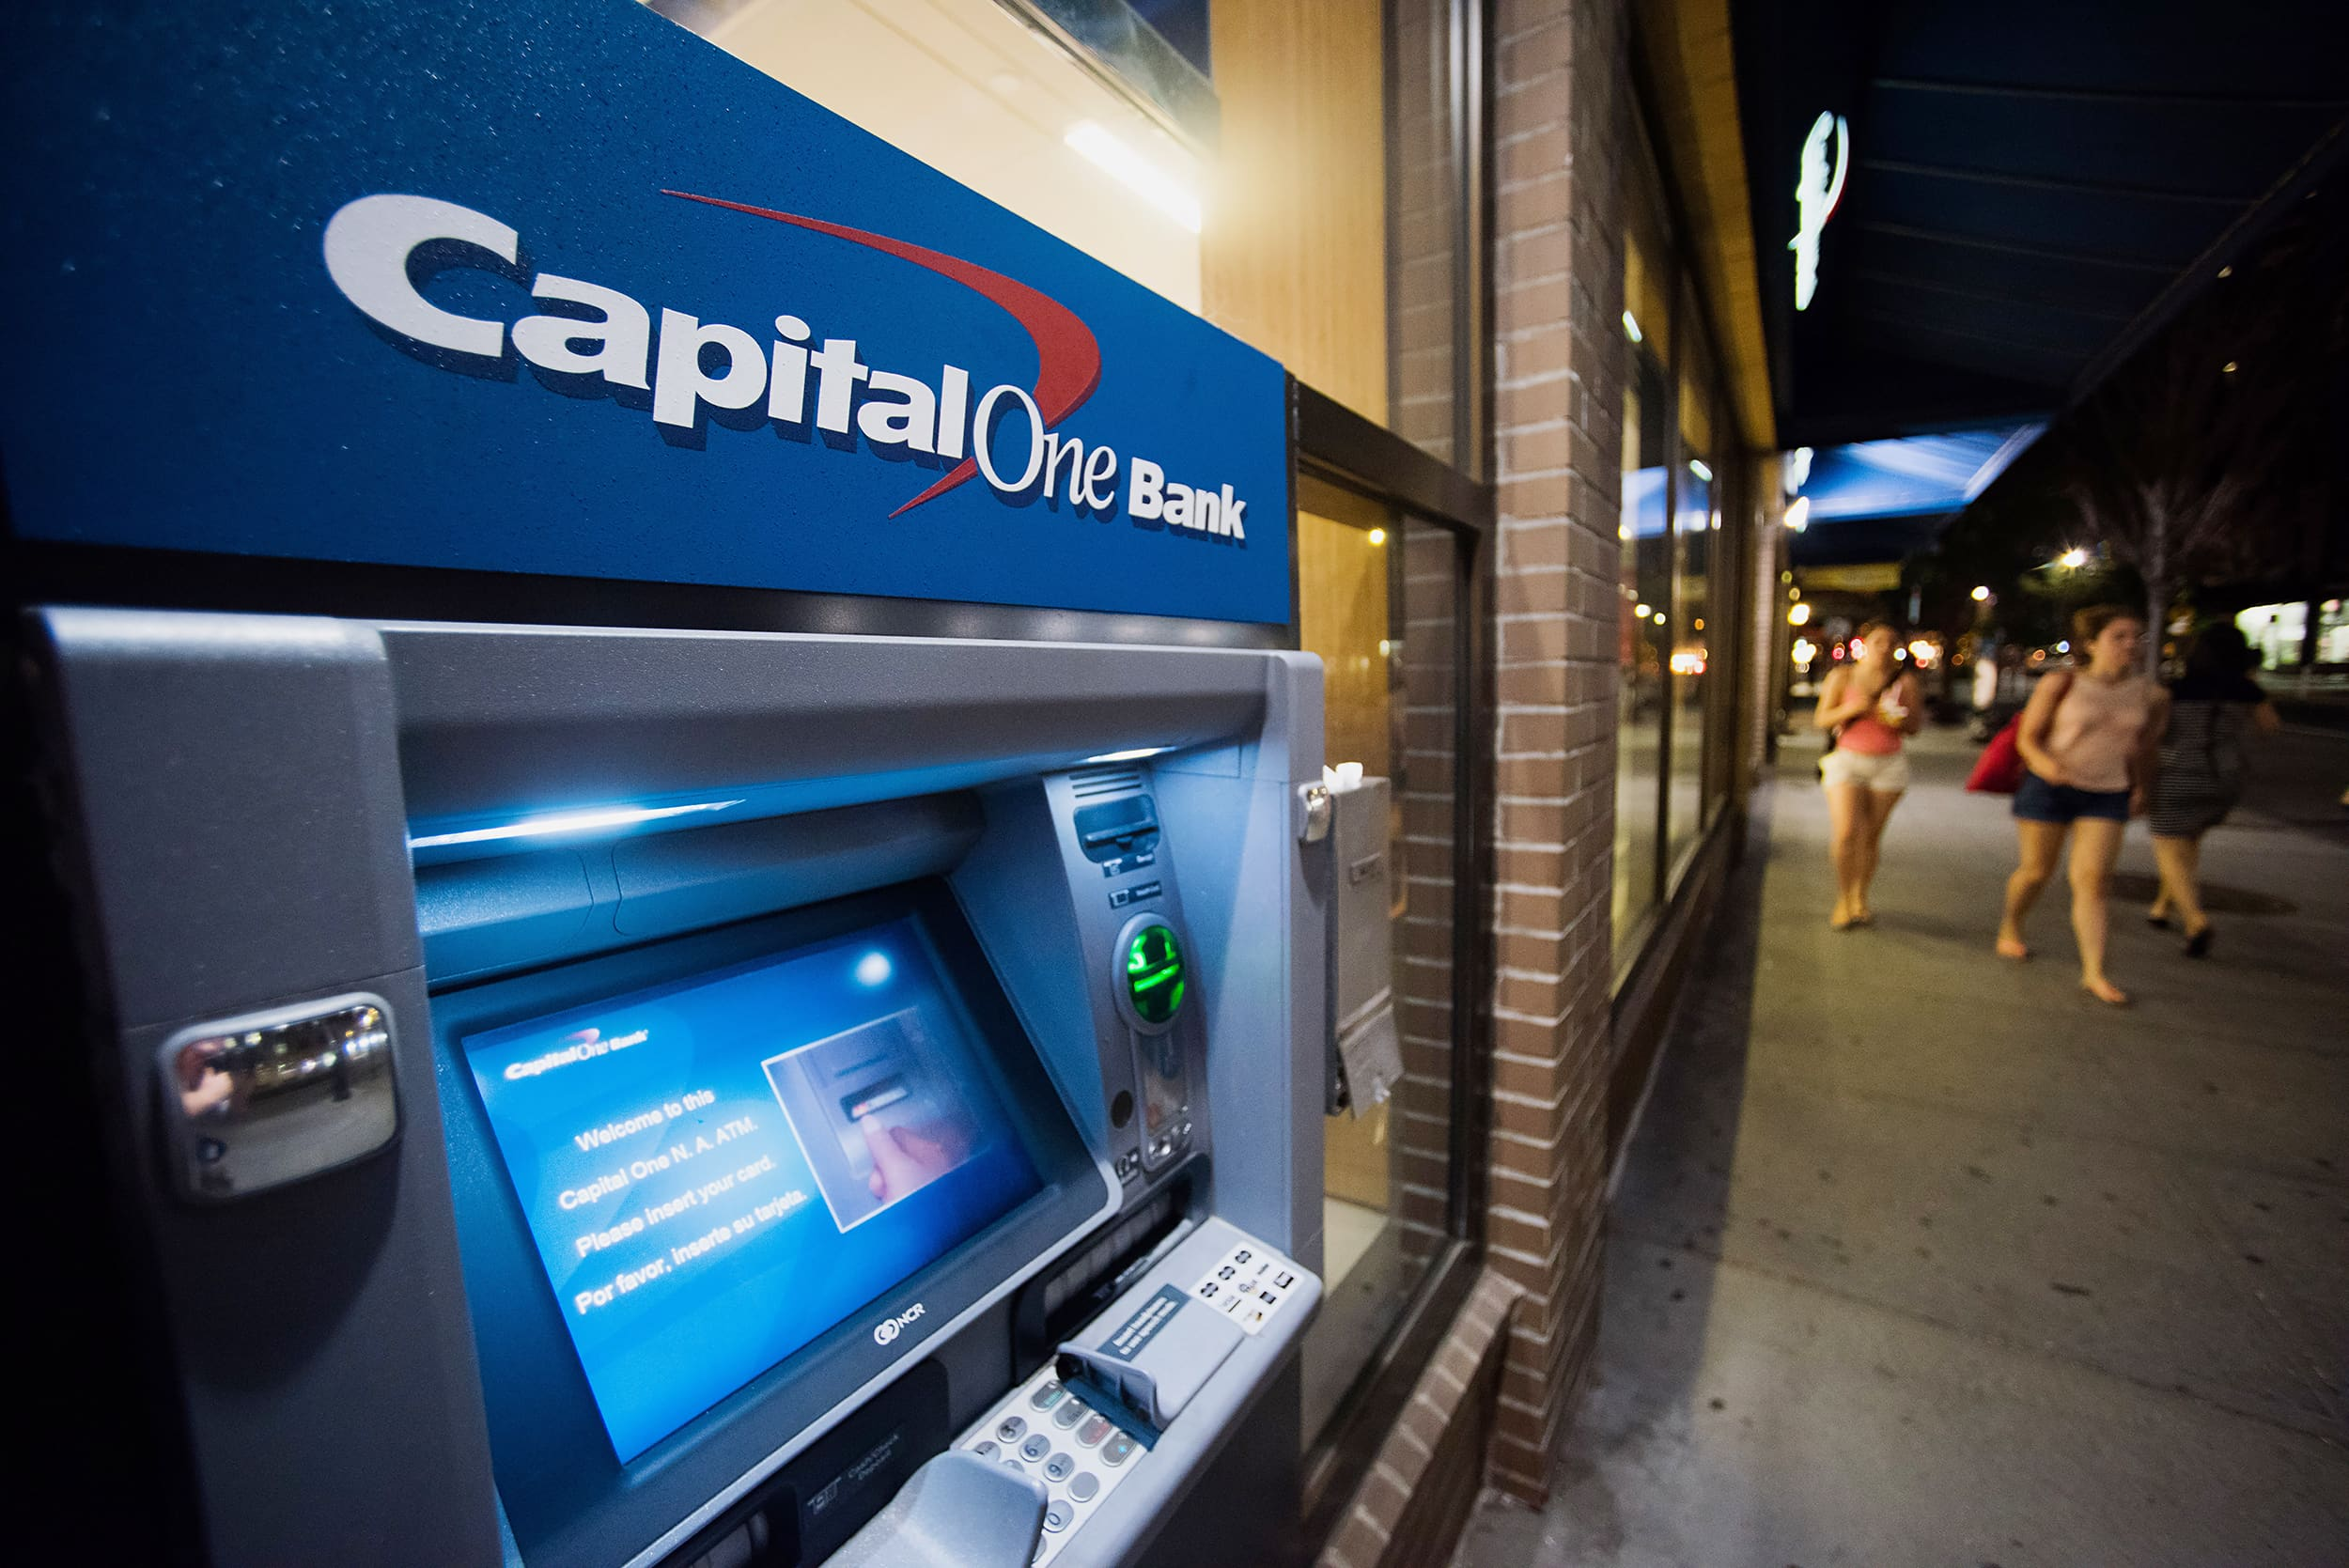 Some Capital One Debit Card Users Charged Twice For Purchases